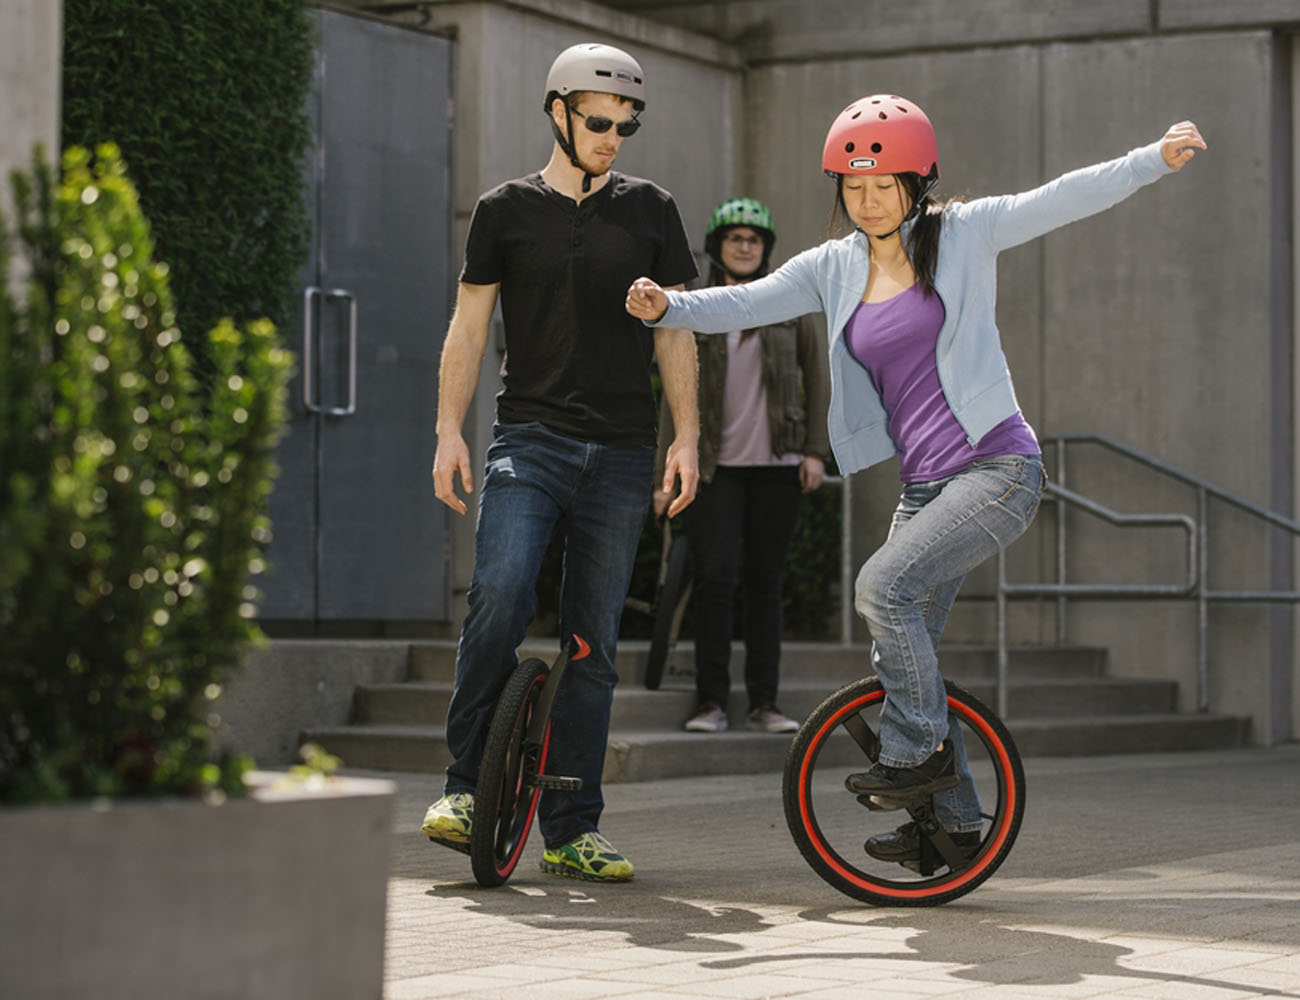 Lunicycle – The Pedal Powered Unicycle